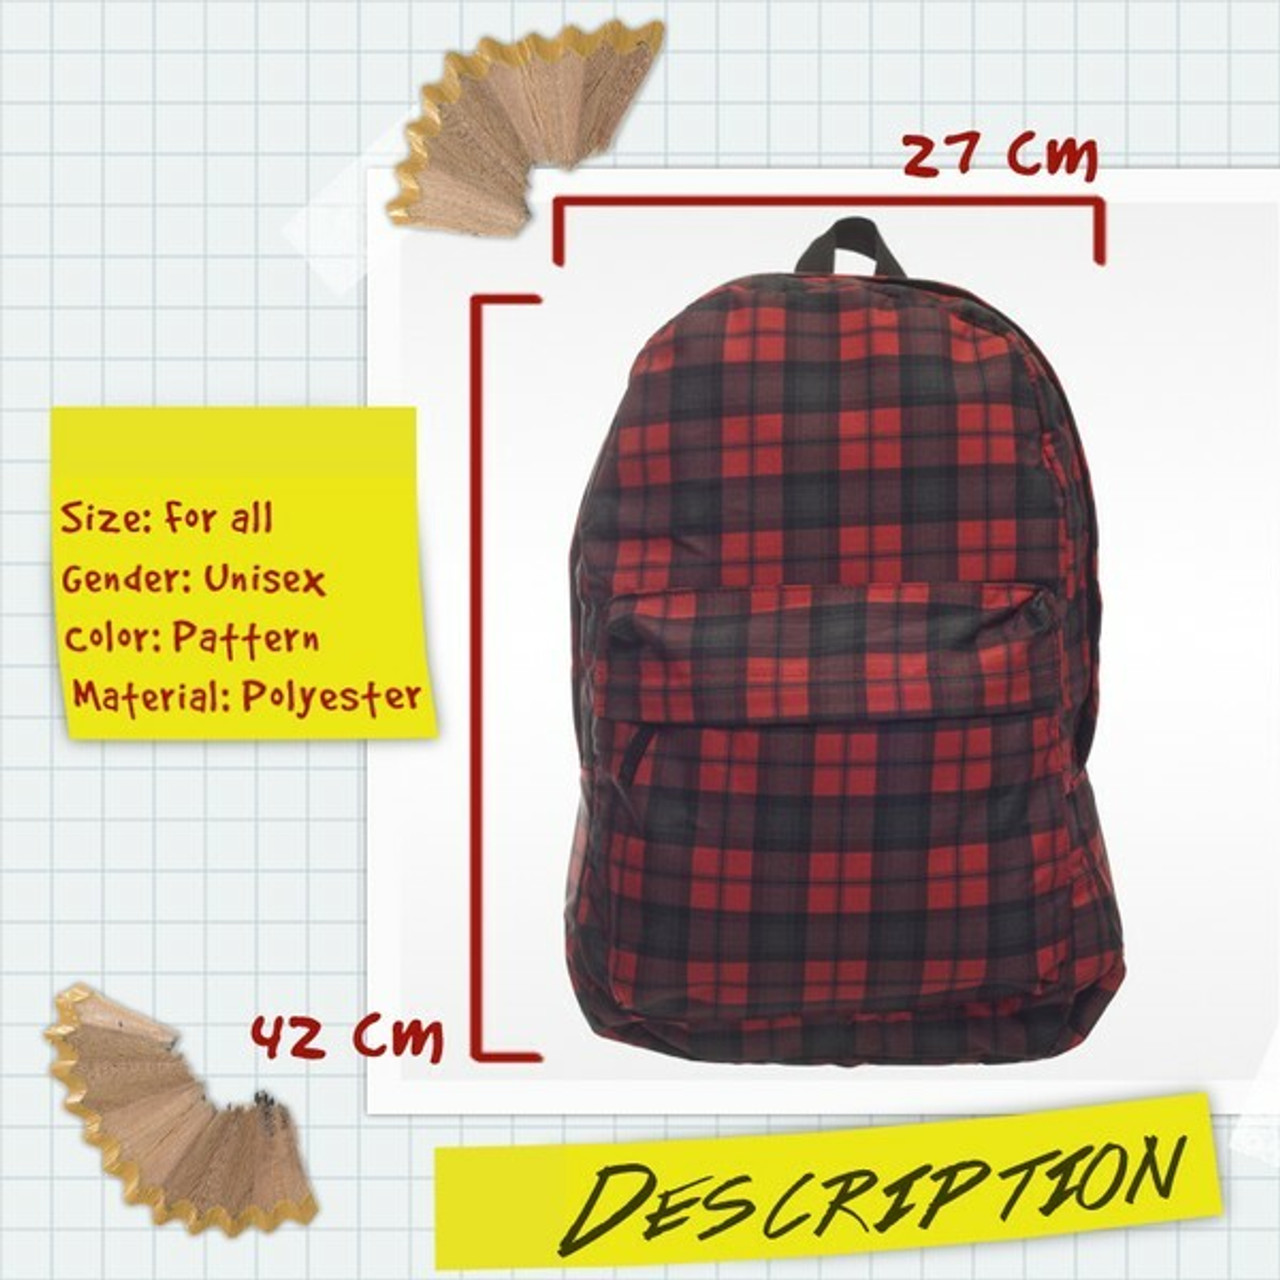 Details and dimensions for Black and Red Plaid Graphic Print Backpack